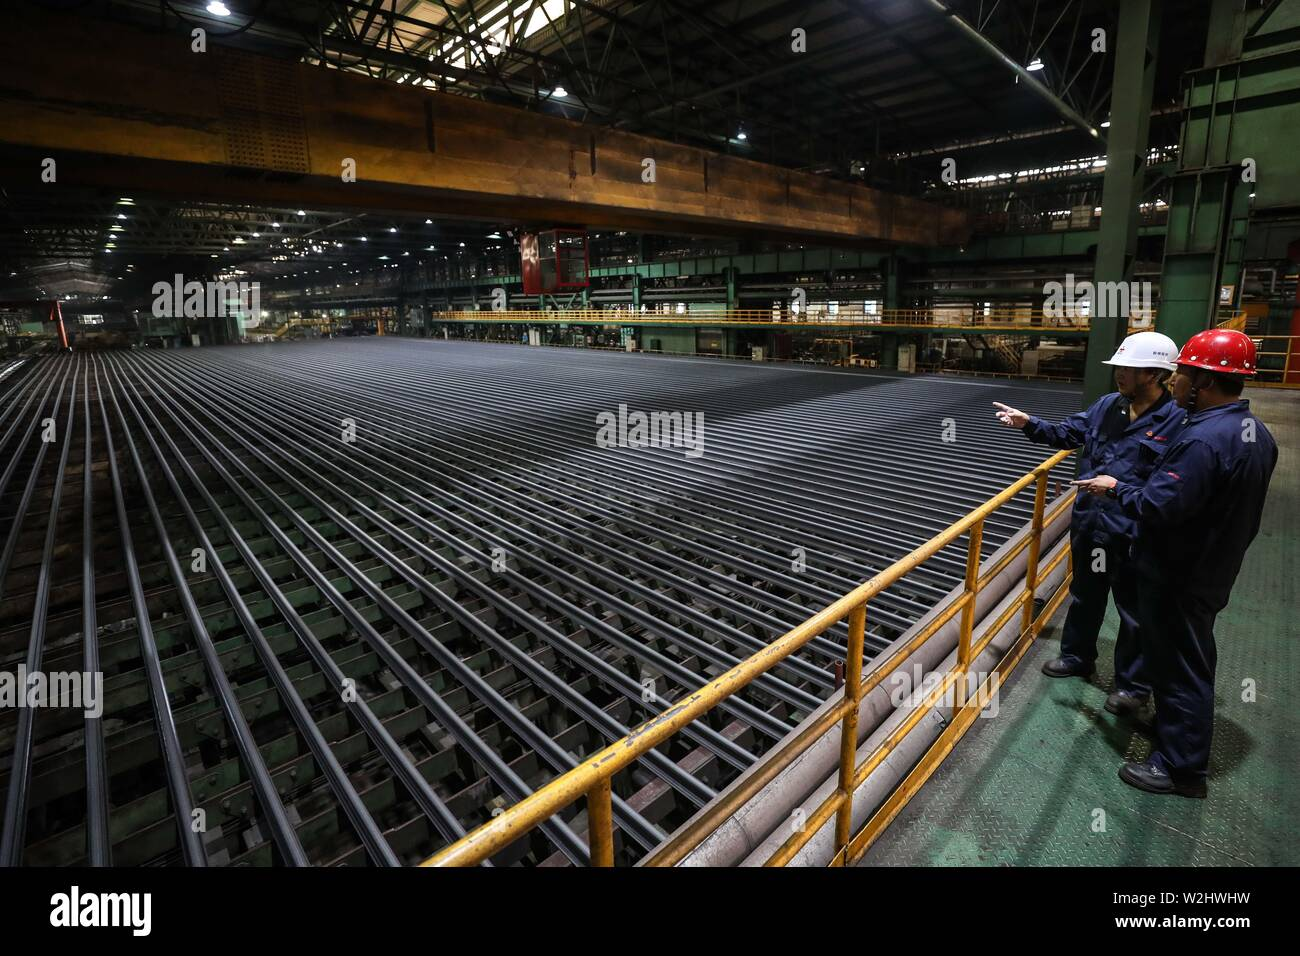 Beijing, China's Liaoning Province. 5th July, 2019. Workers inspect the production of steel rails at a plant of Ansteel Group Co., Ltd. in Anshan, northeast China's Liaoning Province, July 5, 2019. Credit: Pan Yulong/Xinhua/Alamy Live News - Stock Image